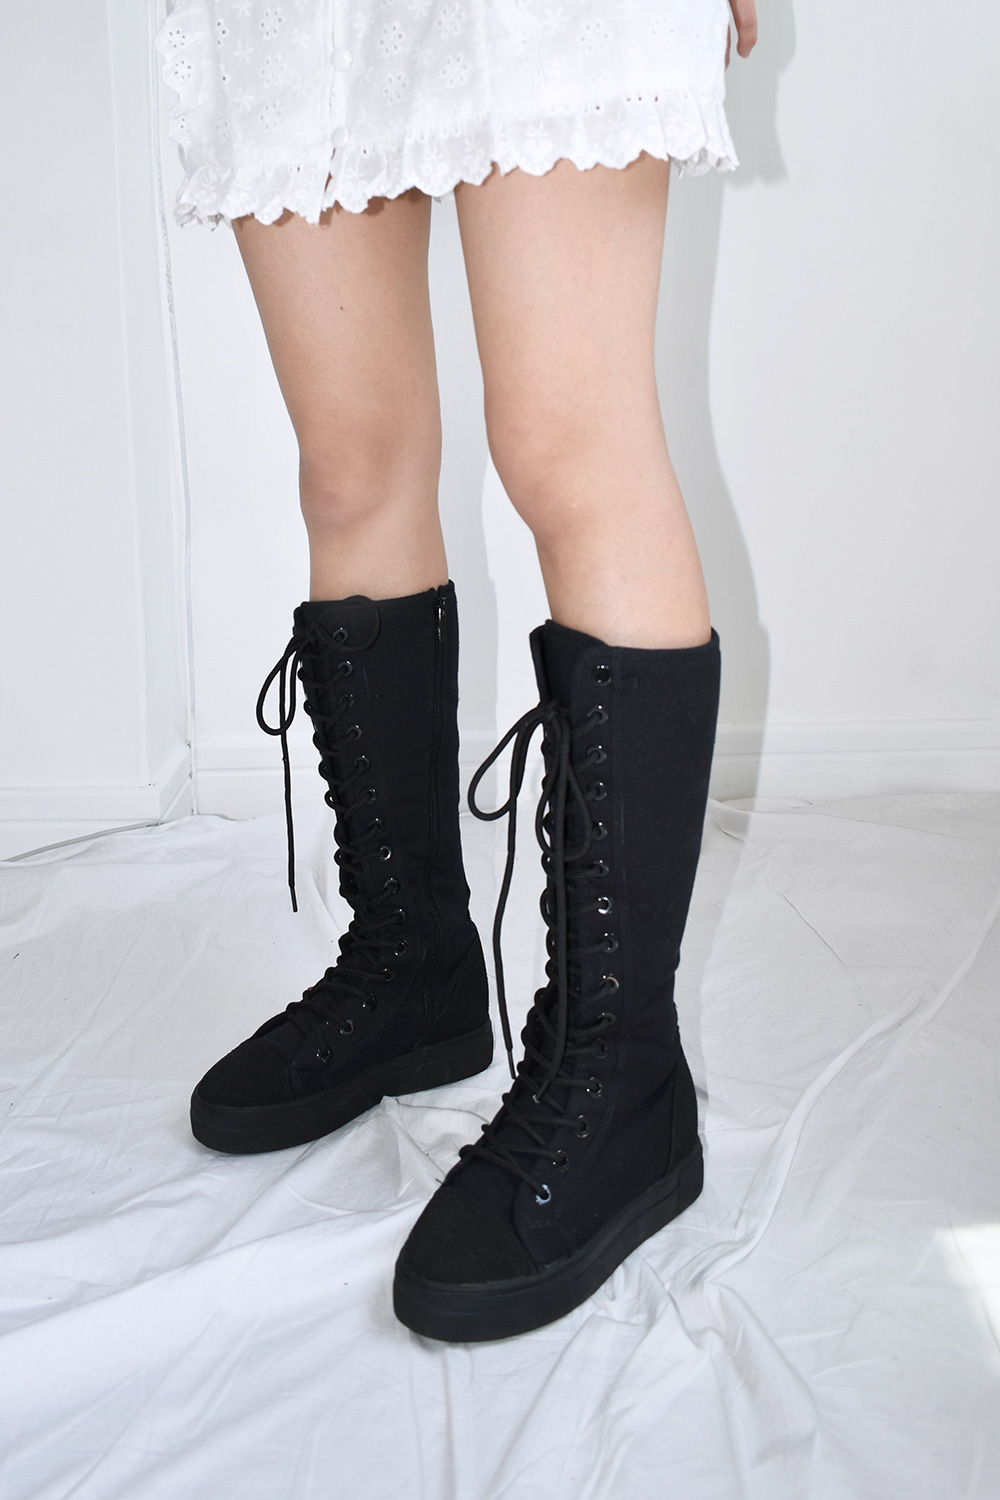 low strap boots (베스트 상품 재입고♥)